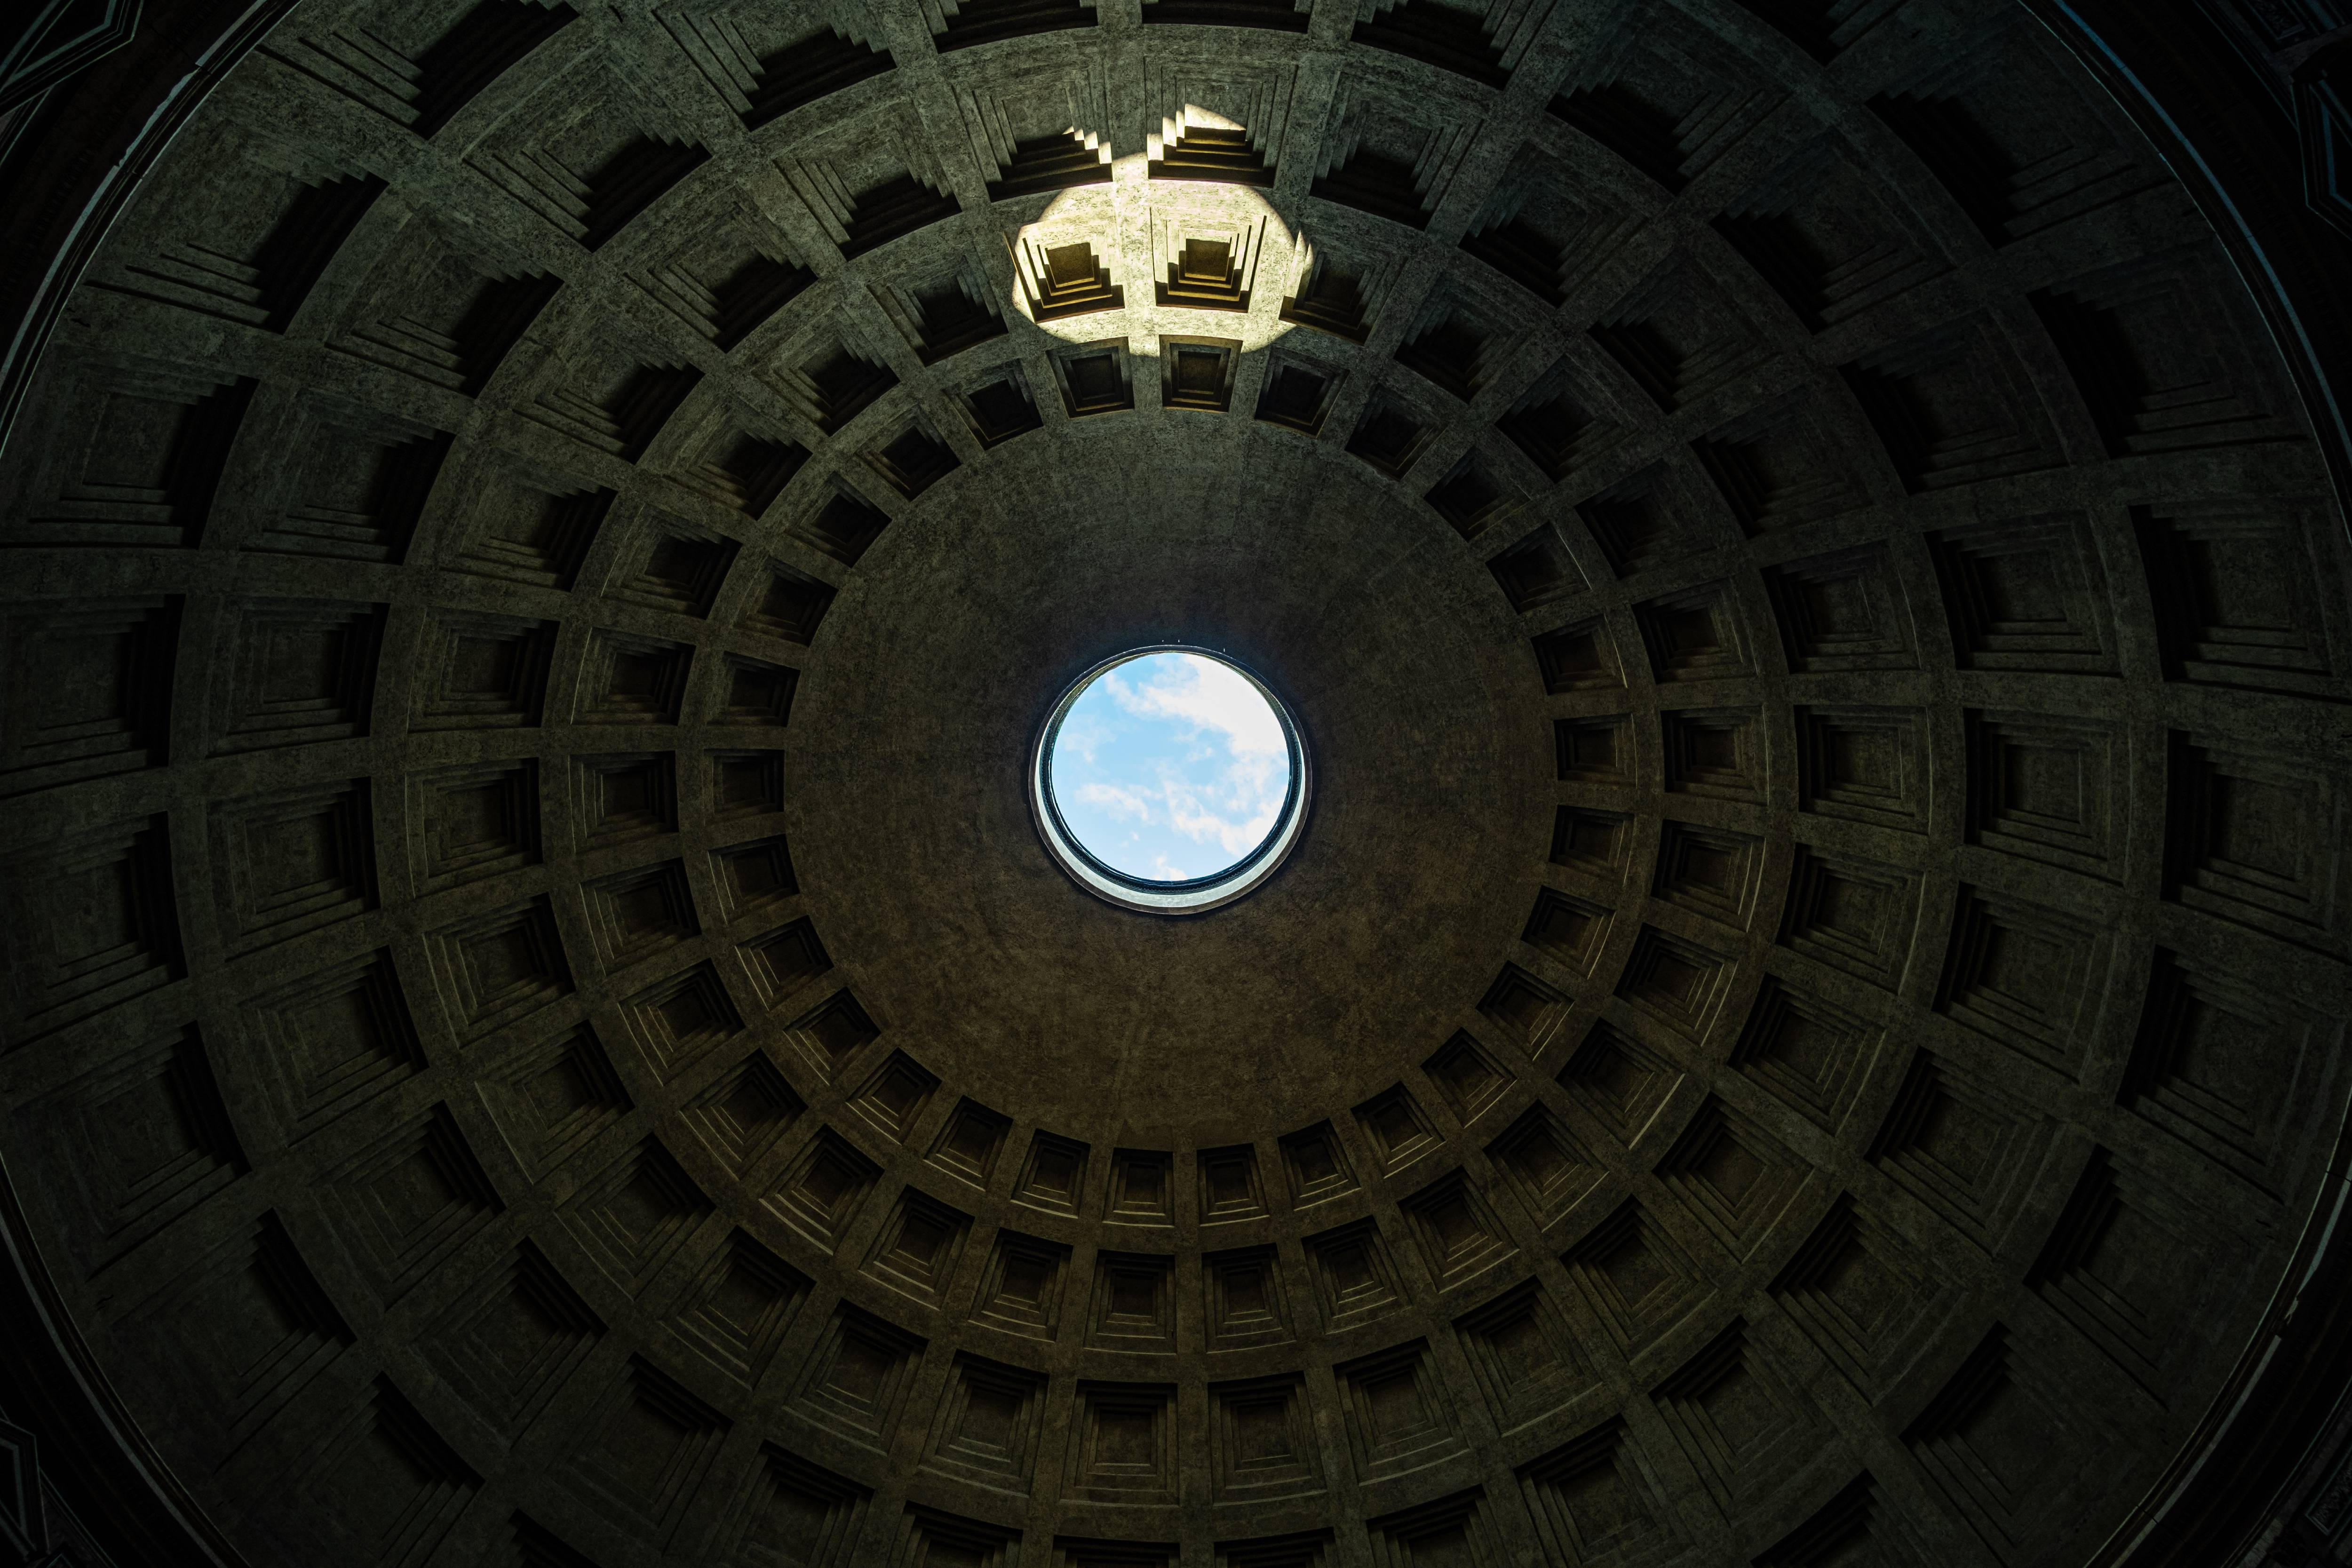 The roof of Pantheon